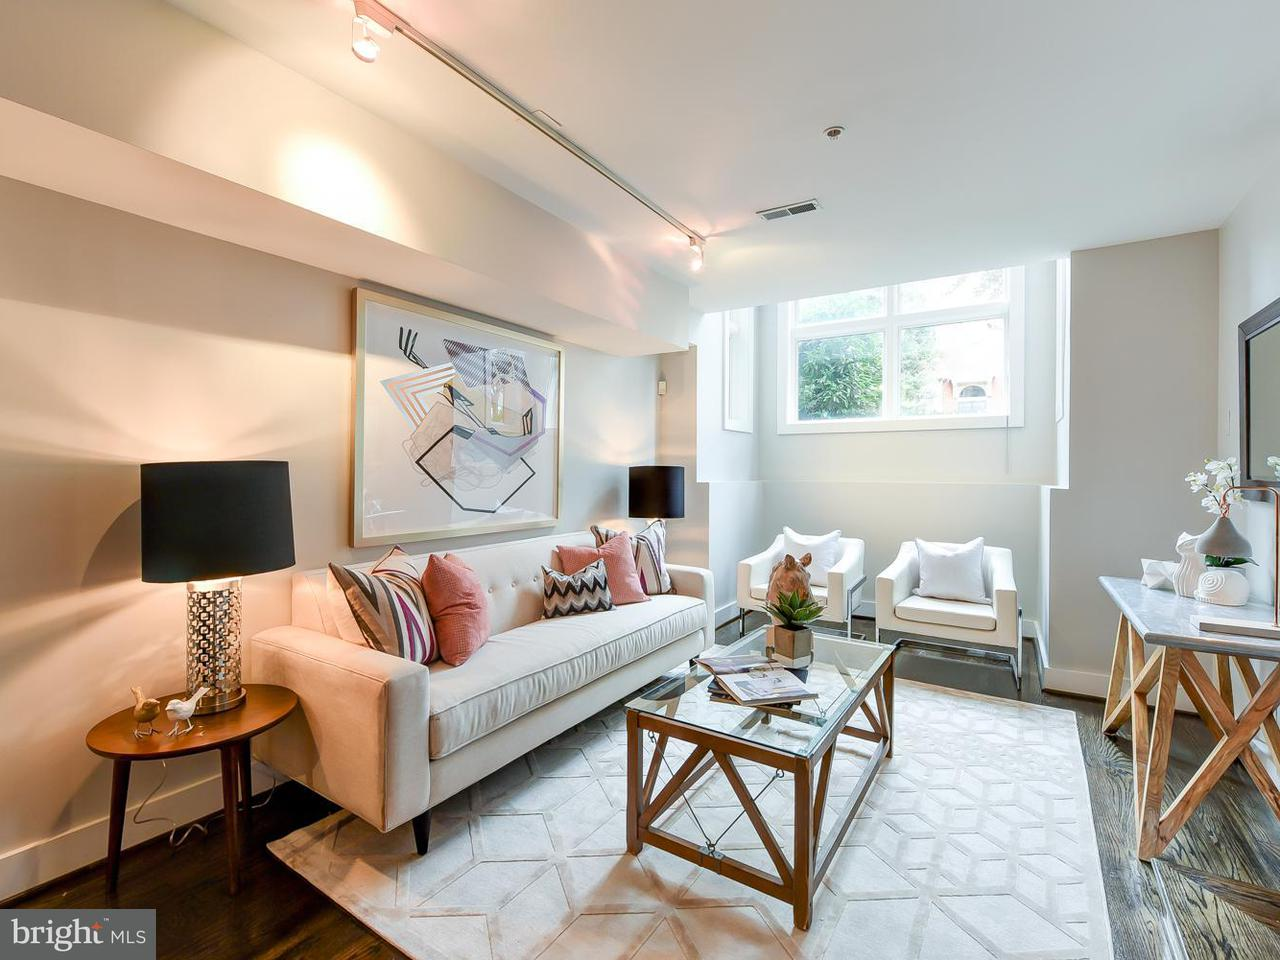 Single Family Home for Sale at 426 M ST NW #B 426 M ST NW #B Washington, District Of Columbia 20001 United States